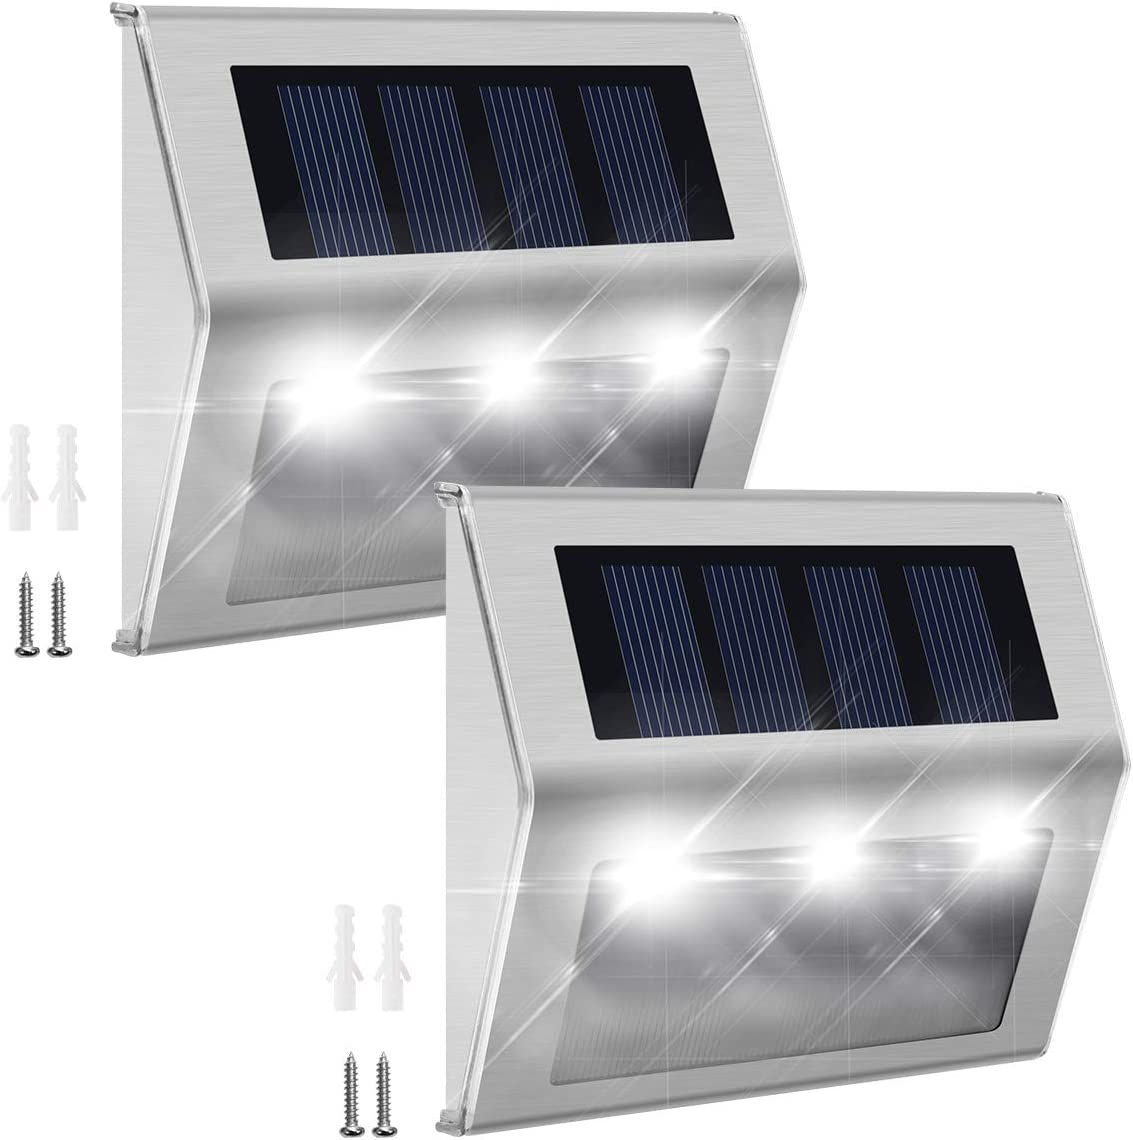 Solar Step Lights with Larger Battery Capacity JACKYLED 2-Pack Stainless Steel Bright 3 LED Solar Powered Deck Lights Weatherproof Outdoor Lighting for Steps Stairs Decks Fences Paths Patio Pathway